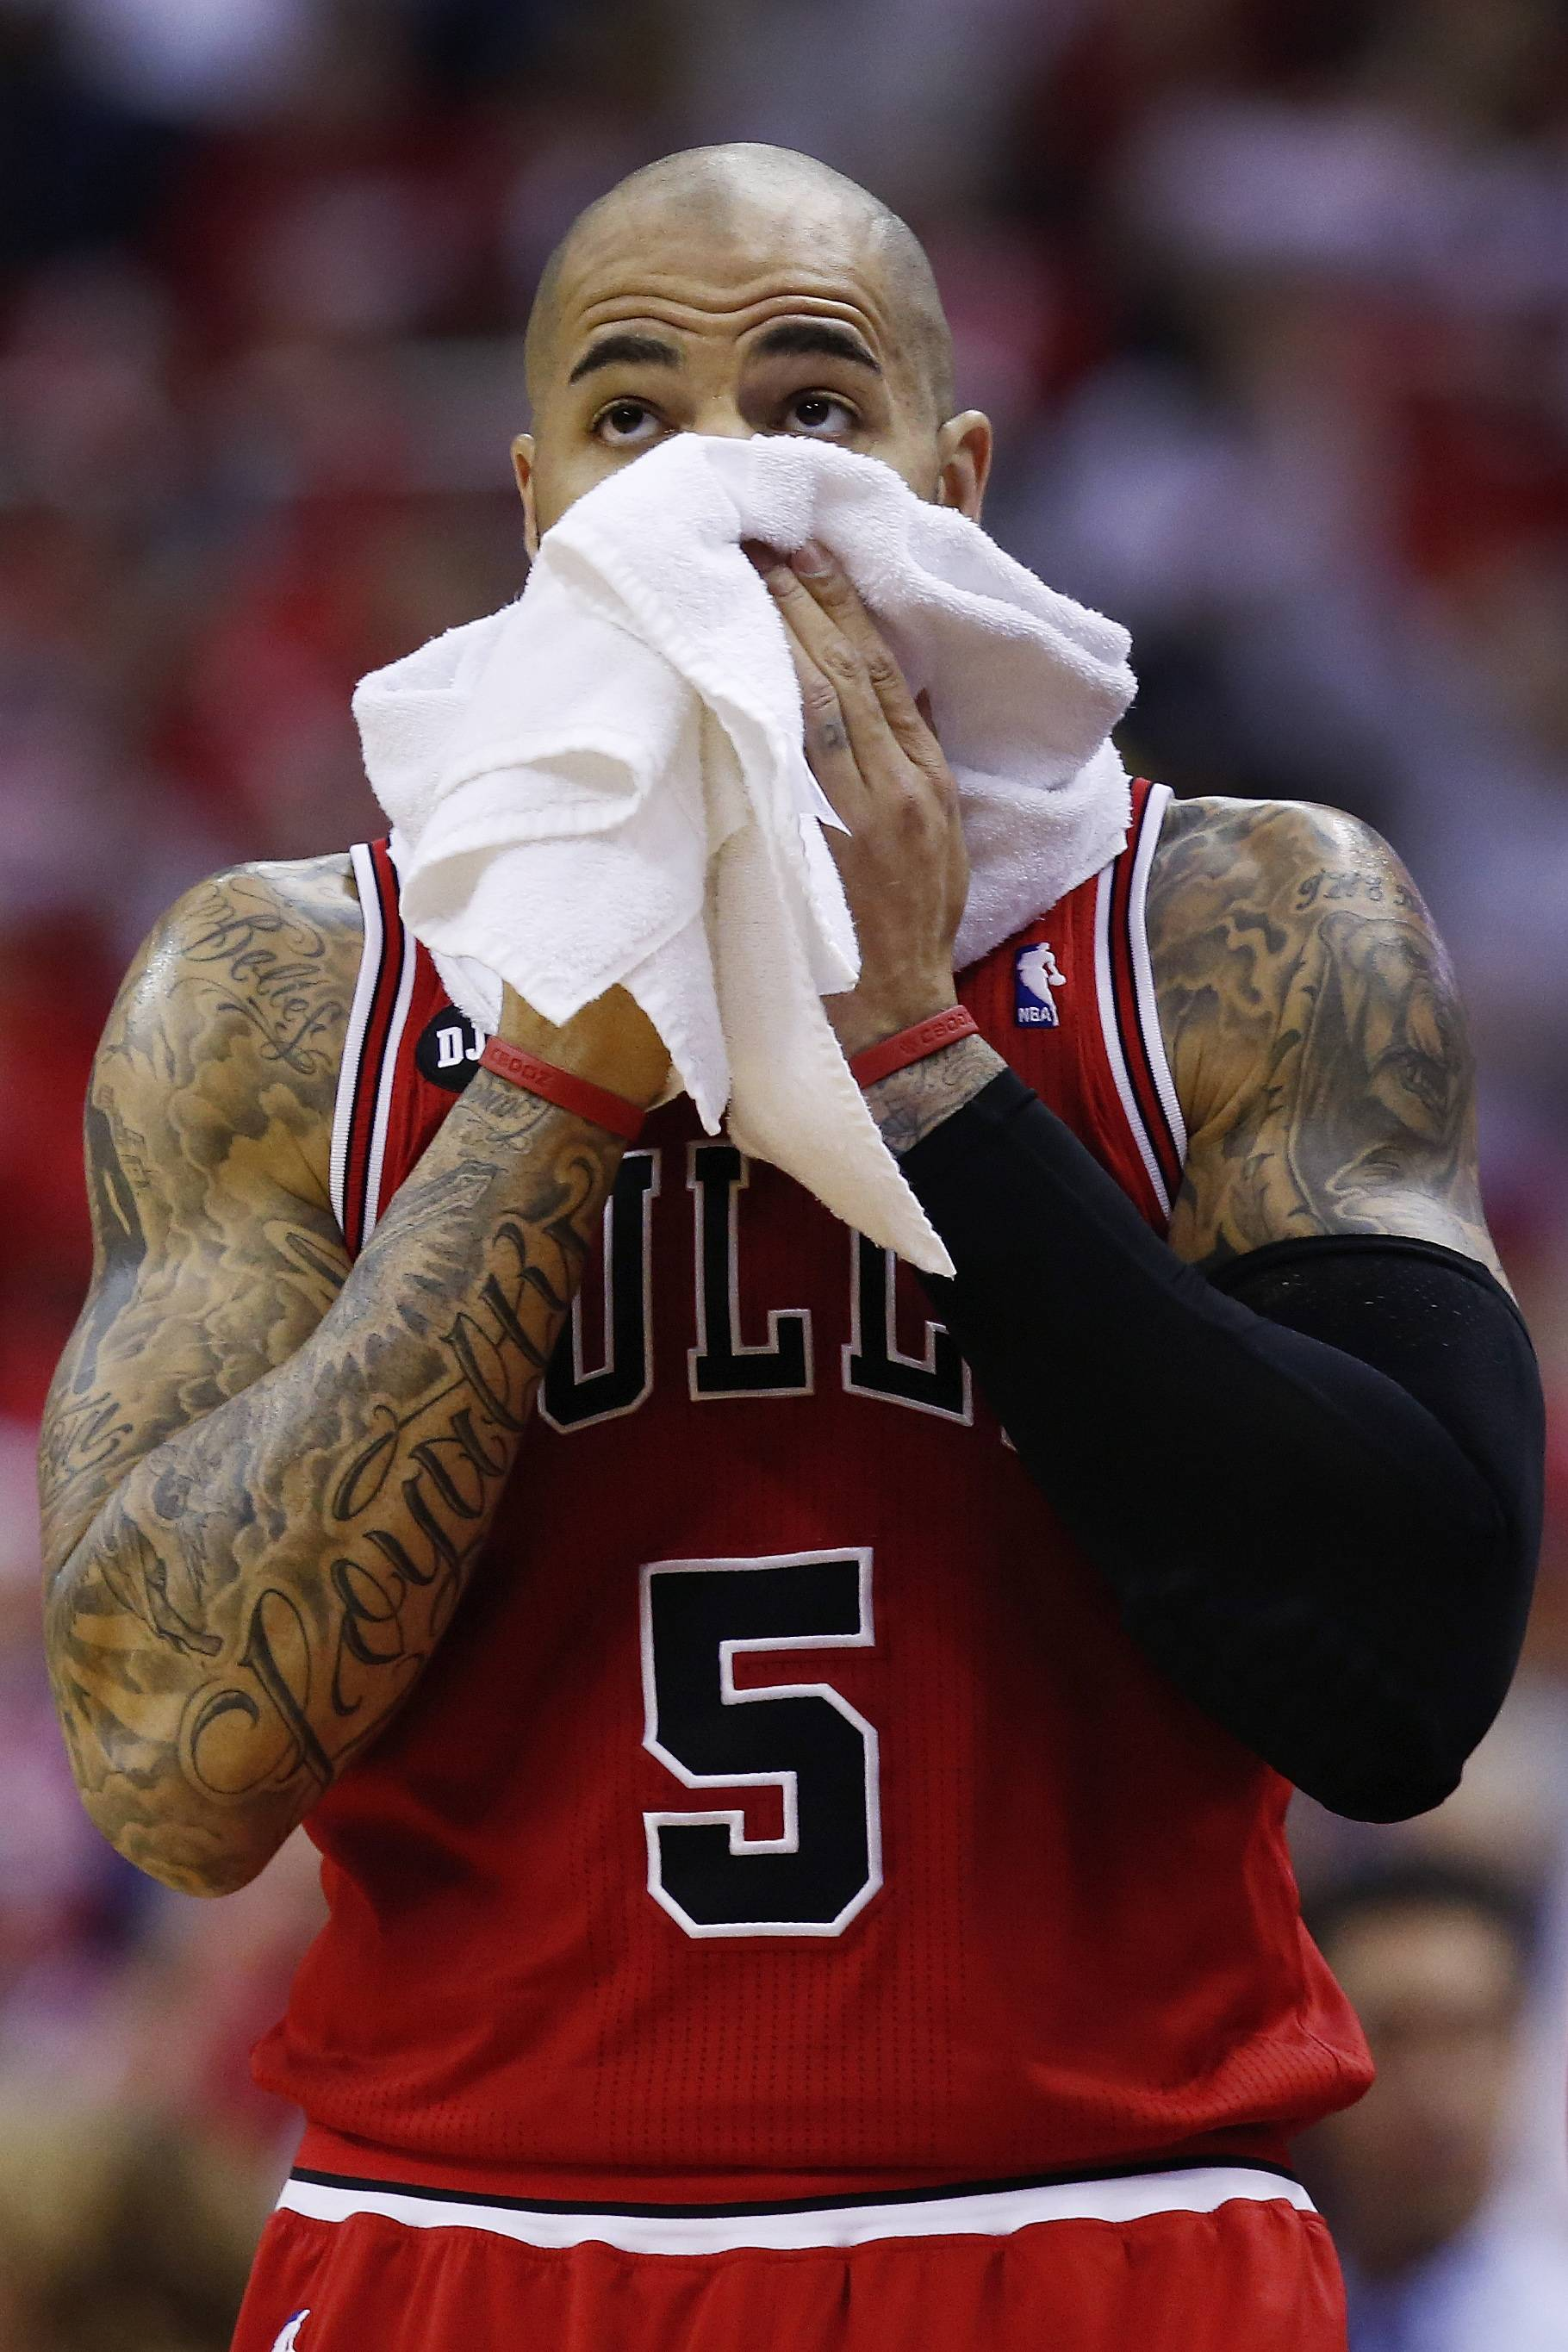 Chicago Bulls forward Carlos Boozer (5) looks at the scoreboard during the first half.